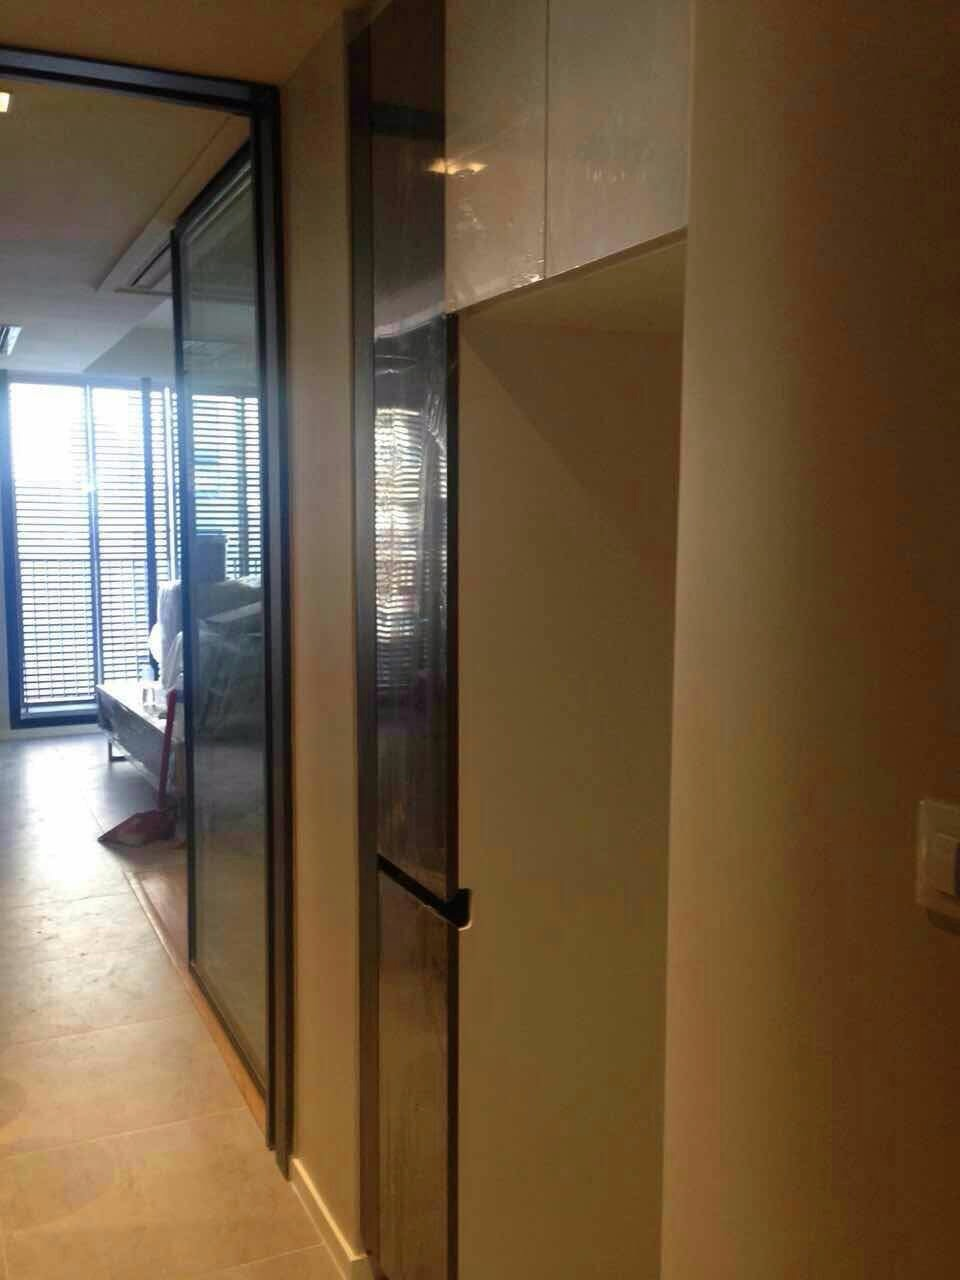 RE/MAX All Star Realty Agency's One Bedder (42sqm) at Circle S for Rent – walk to BTS Asoke or Nana 11